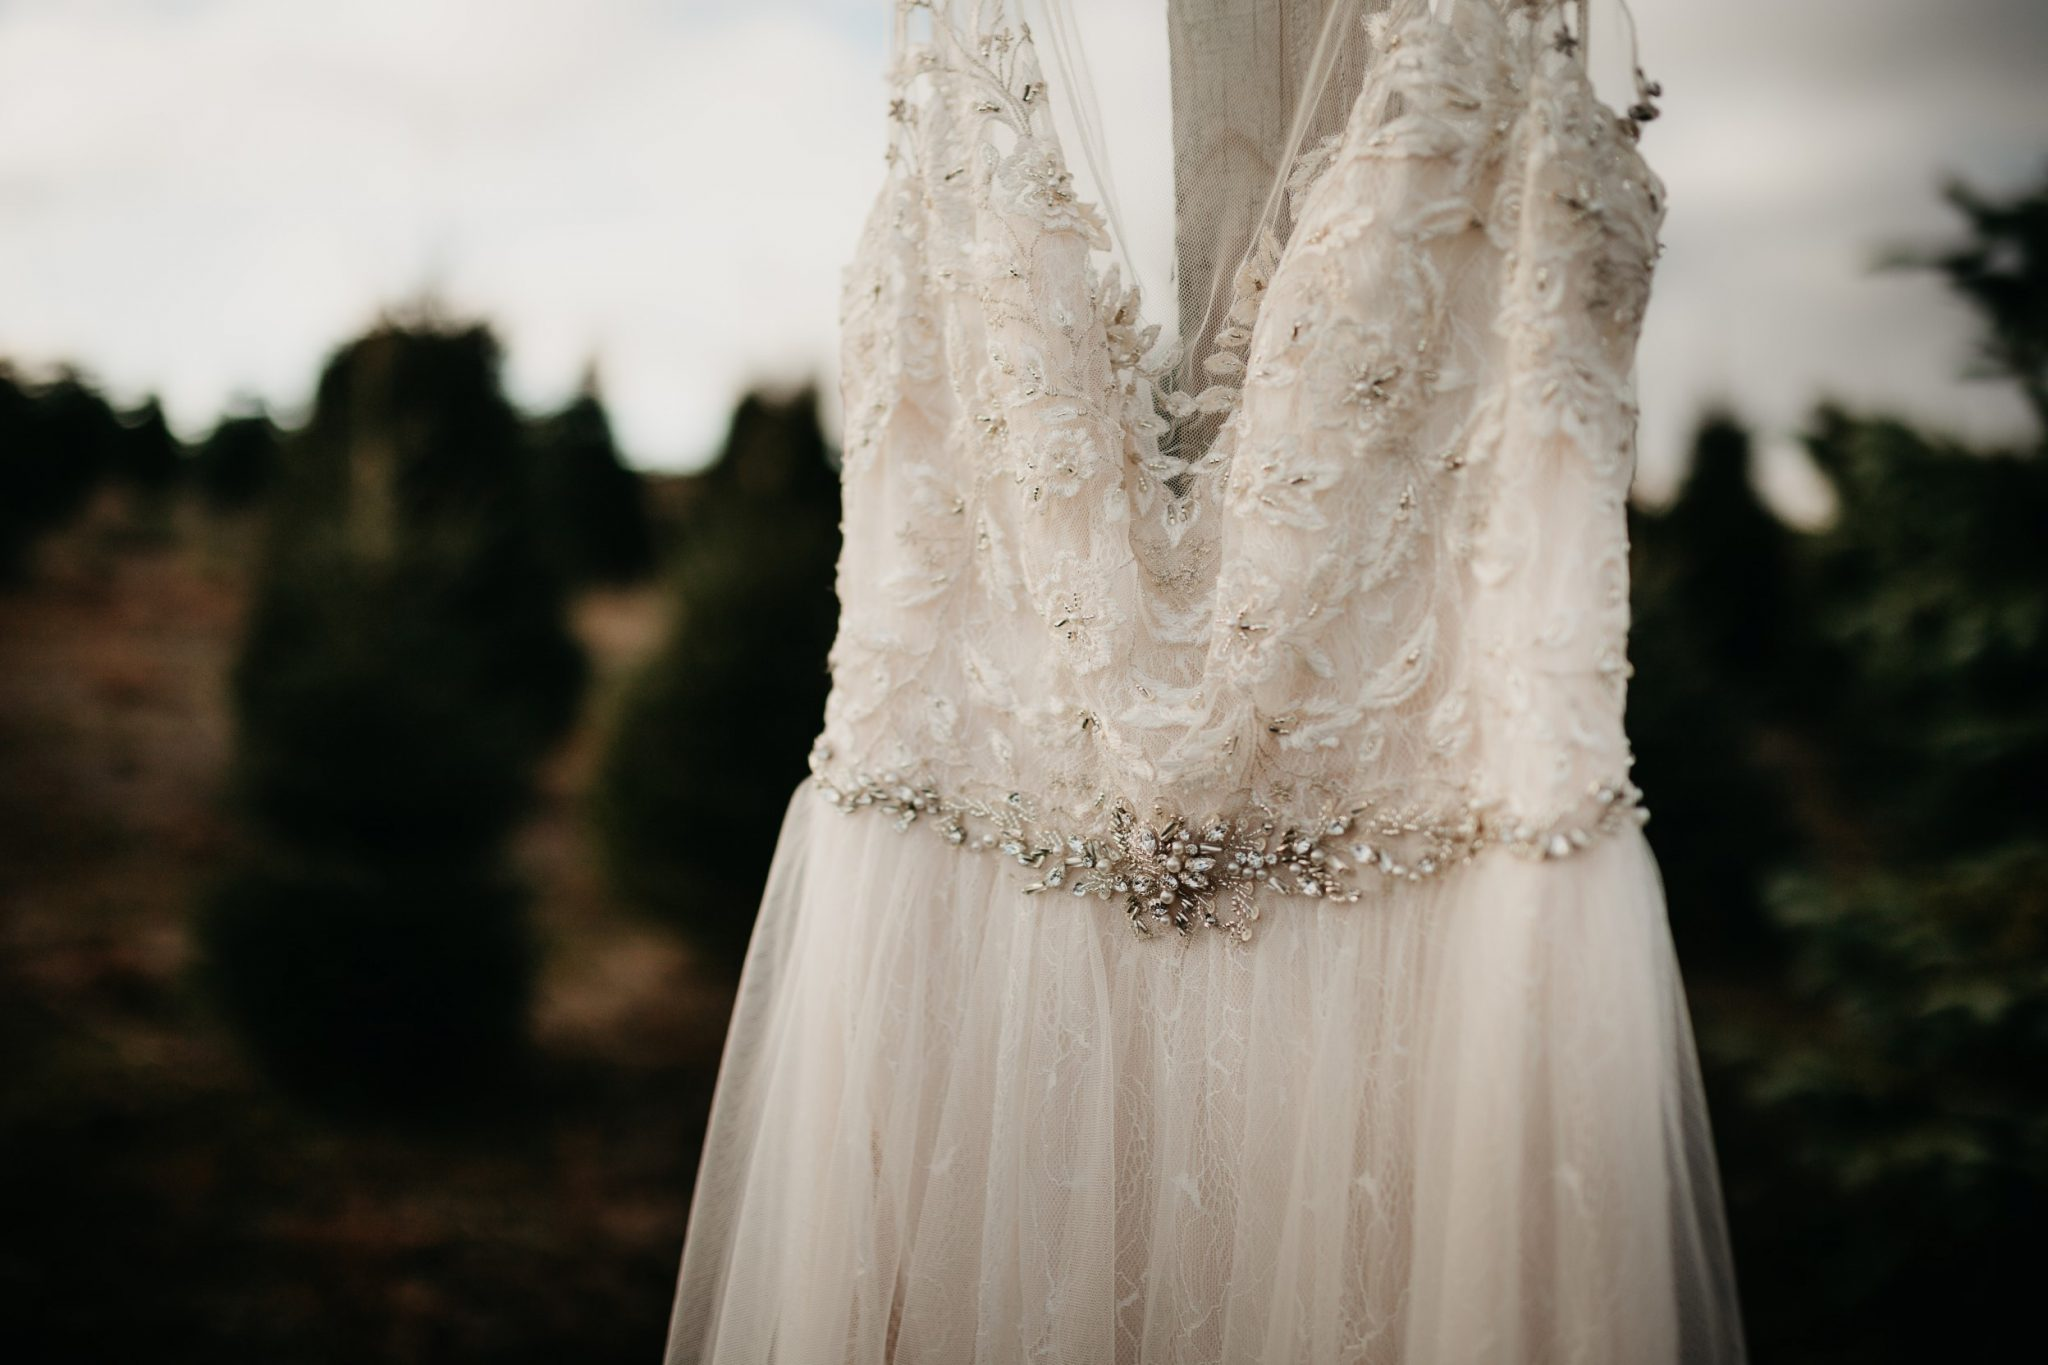 vintage wedding dress- preloved wedding dress